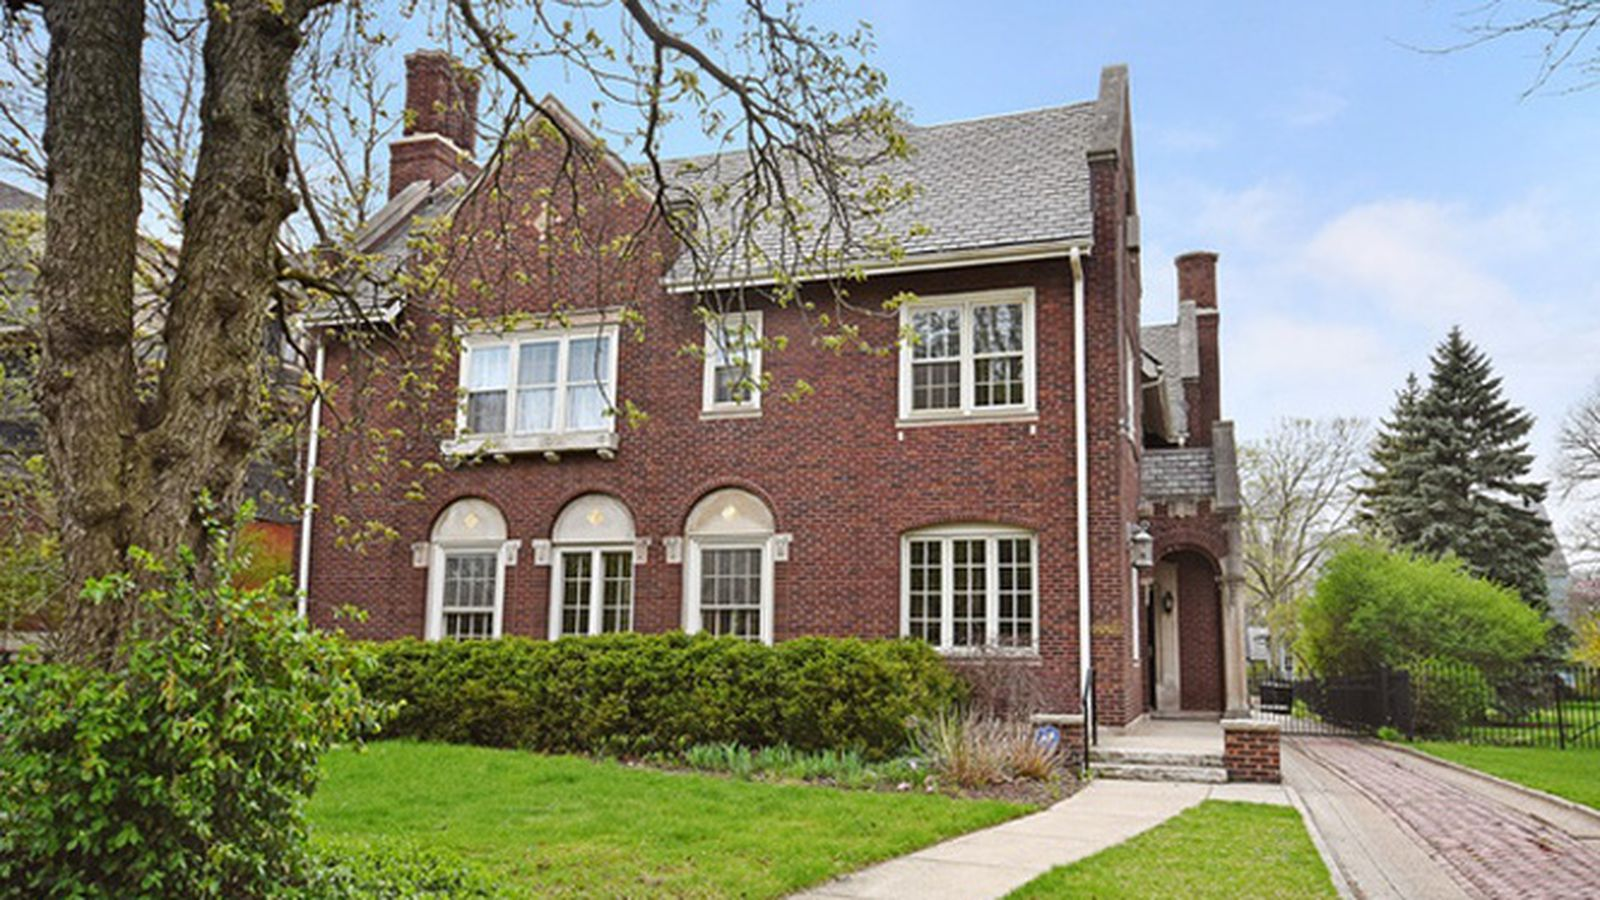 Alfred alschuler designed mansion in kenwood shaves 400k for Mansion in chicago for sale